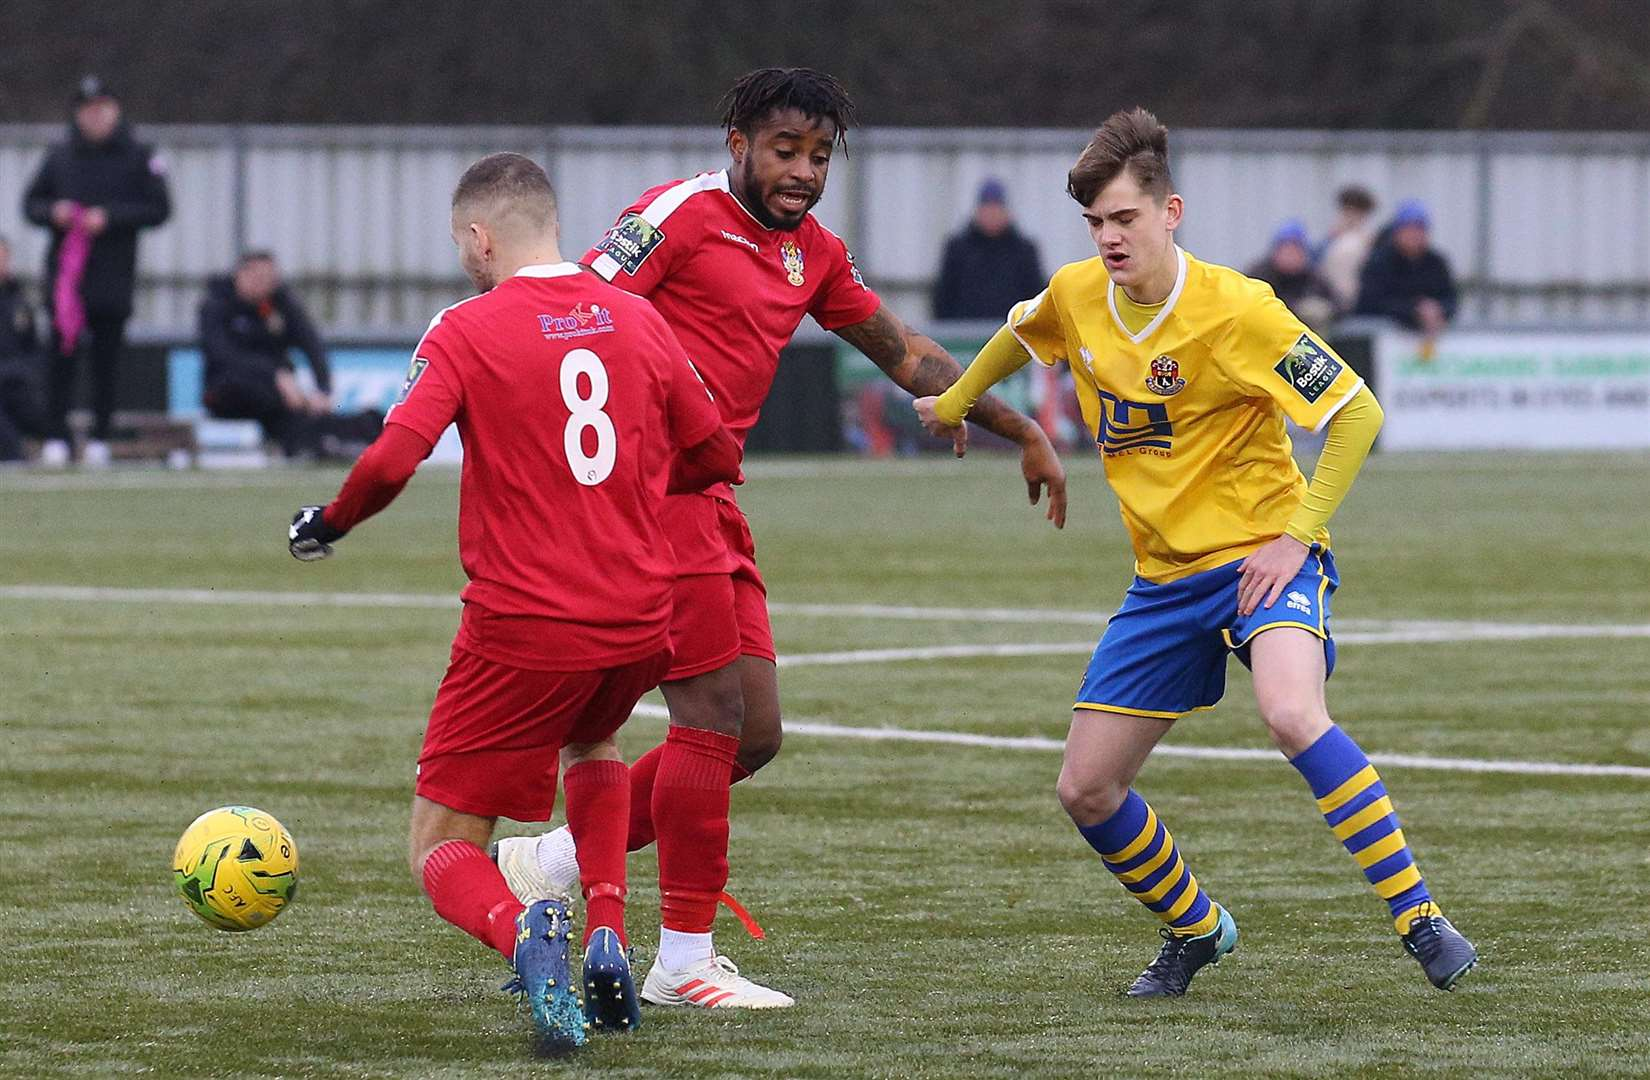 AFC Sudbury v Aveley - Tom Dettmer.Pic - Richard Marsham. (6333194)